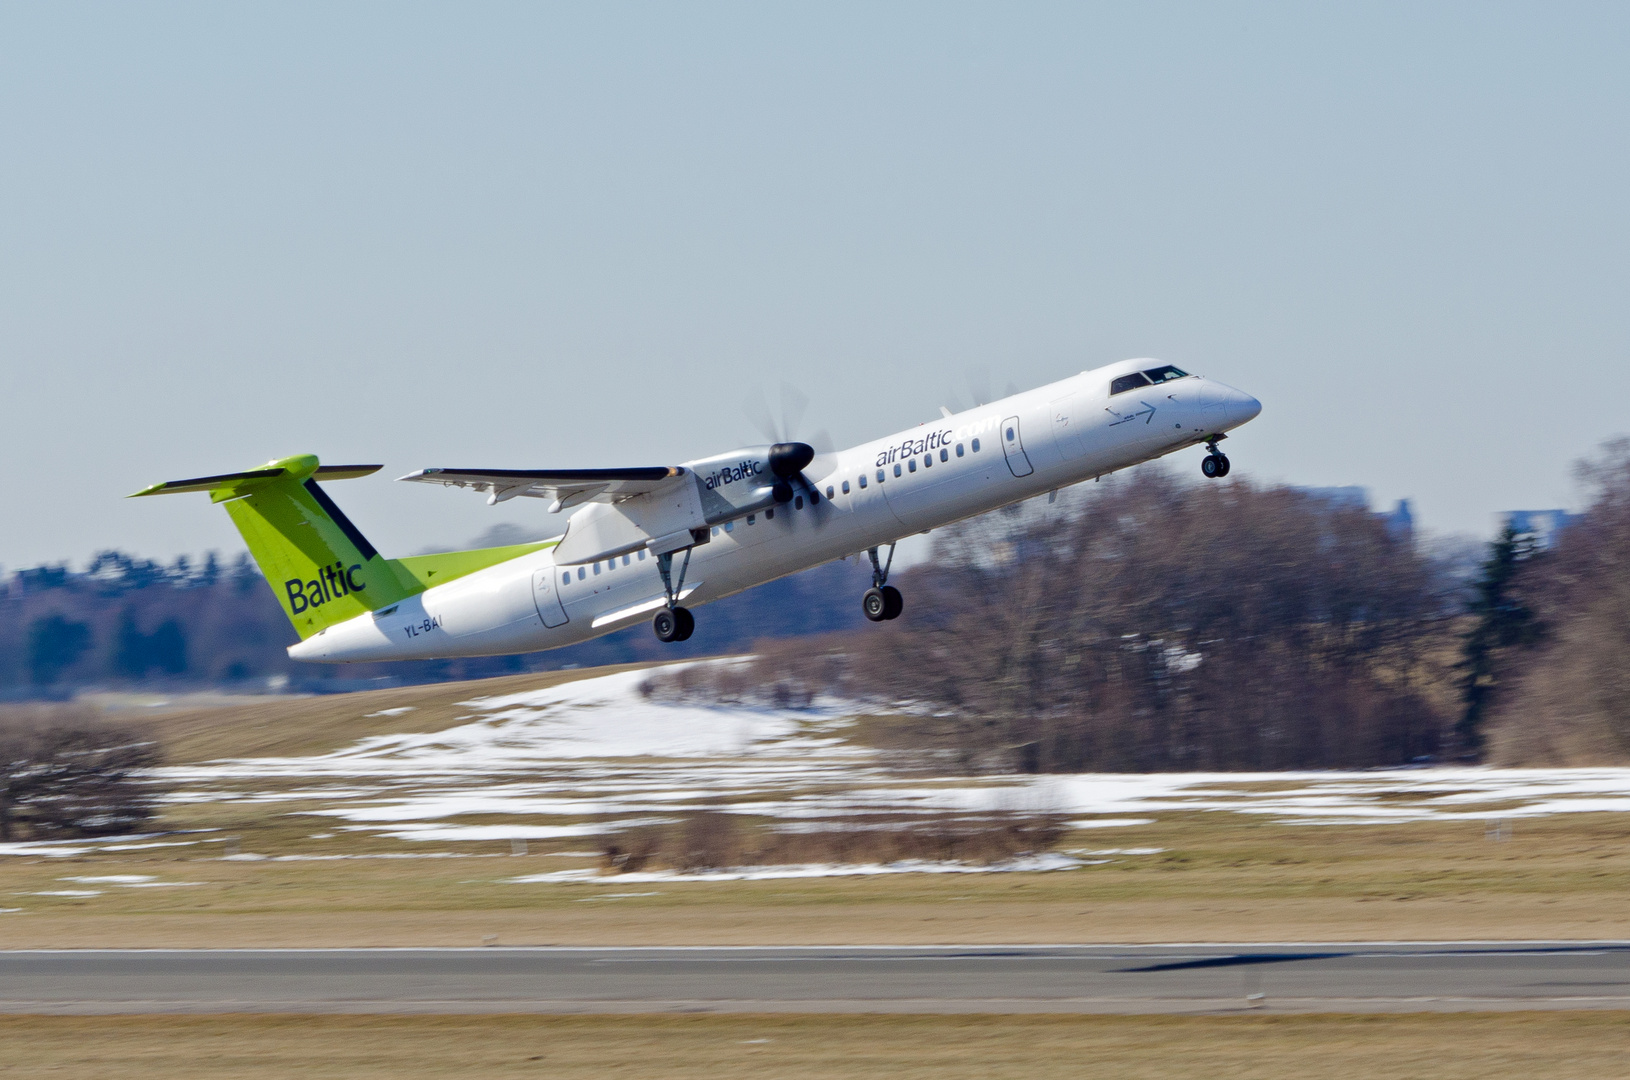 Air Baltic De Havilland Canada DHC-8-402Q